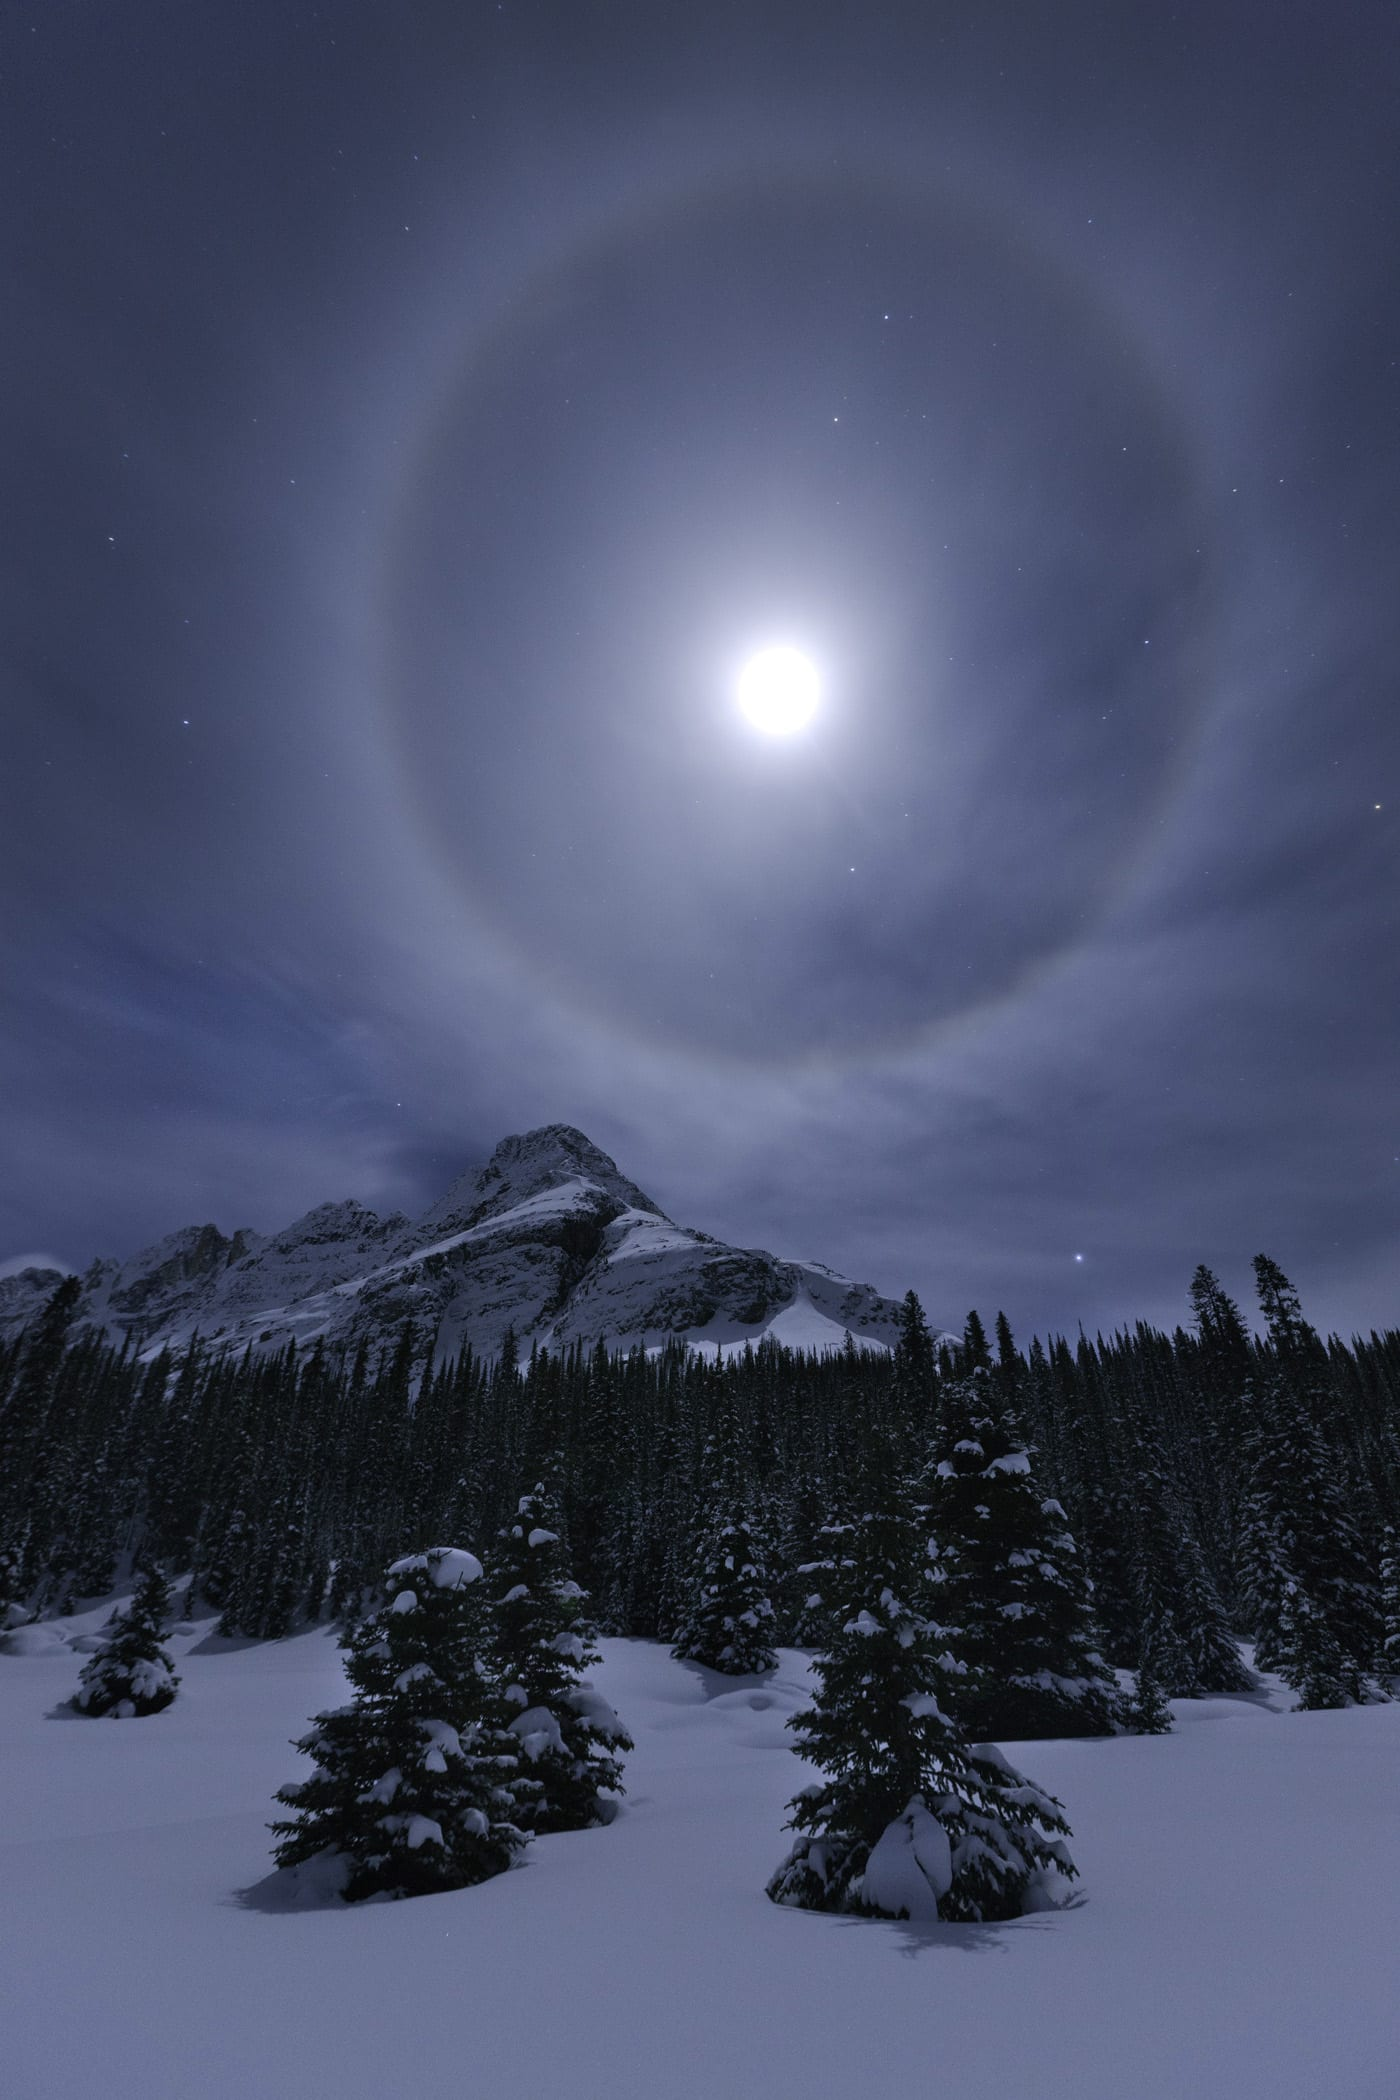 Yoho National Park: A Canadian Gem – Photographs by Peter Essick | Booth Western Art Museum | Interview with photographer Peter Essick and Museum Executive Director Seth Hopkins